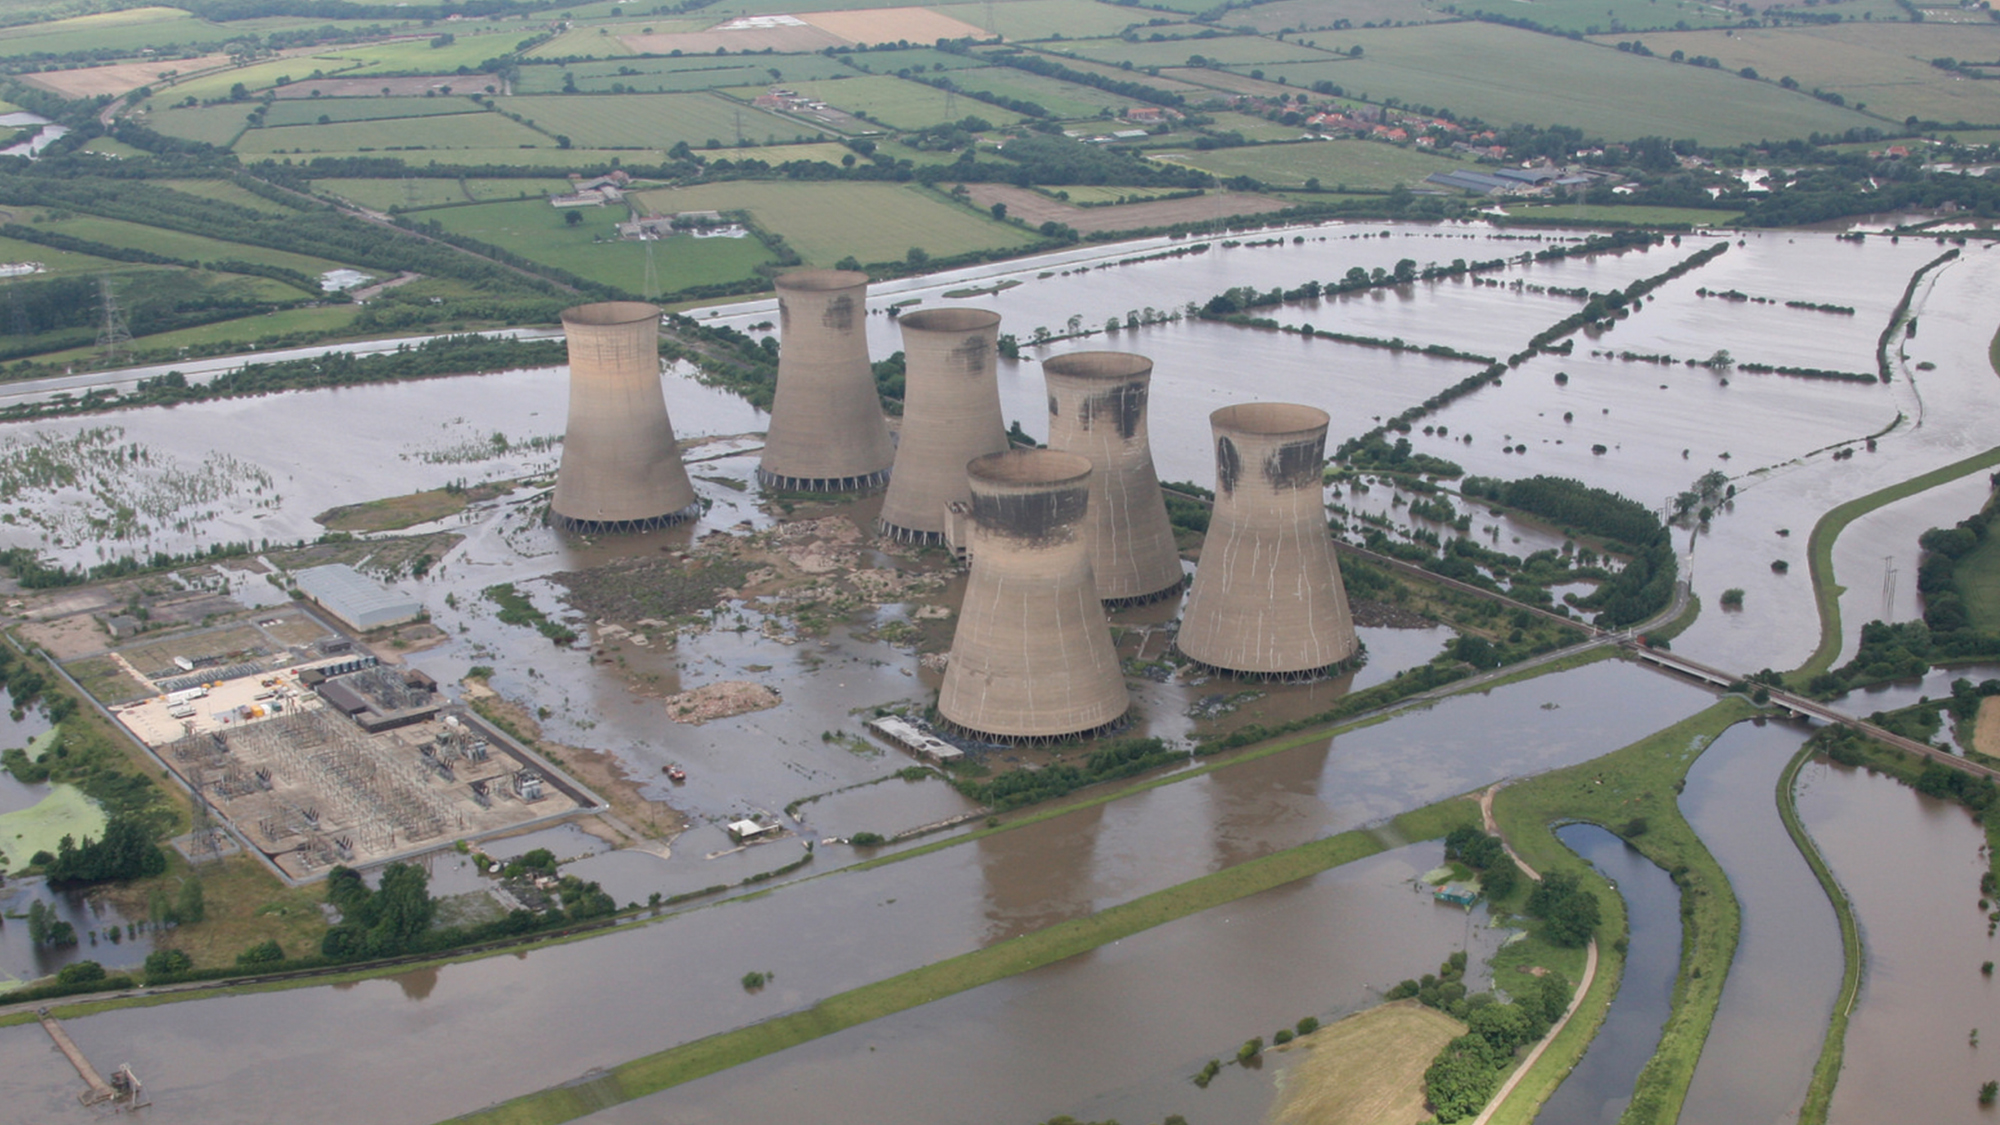 FloodriskmanagementFlood Resilience for Critical Infrastructurec Peter Smith Photography a.jpg